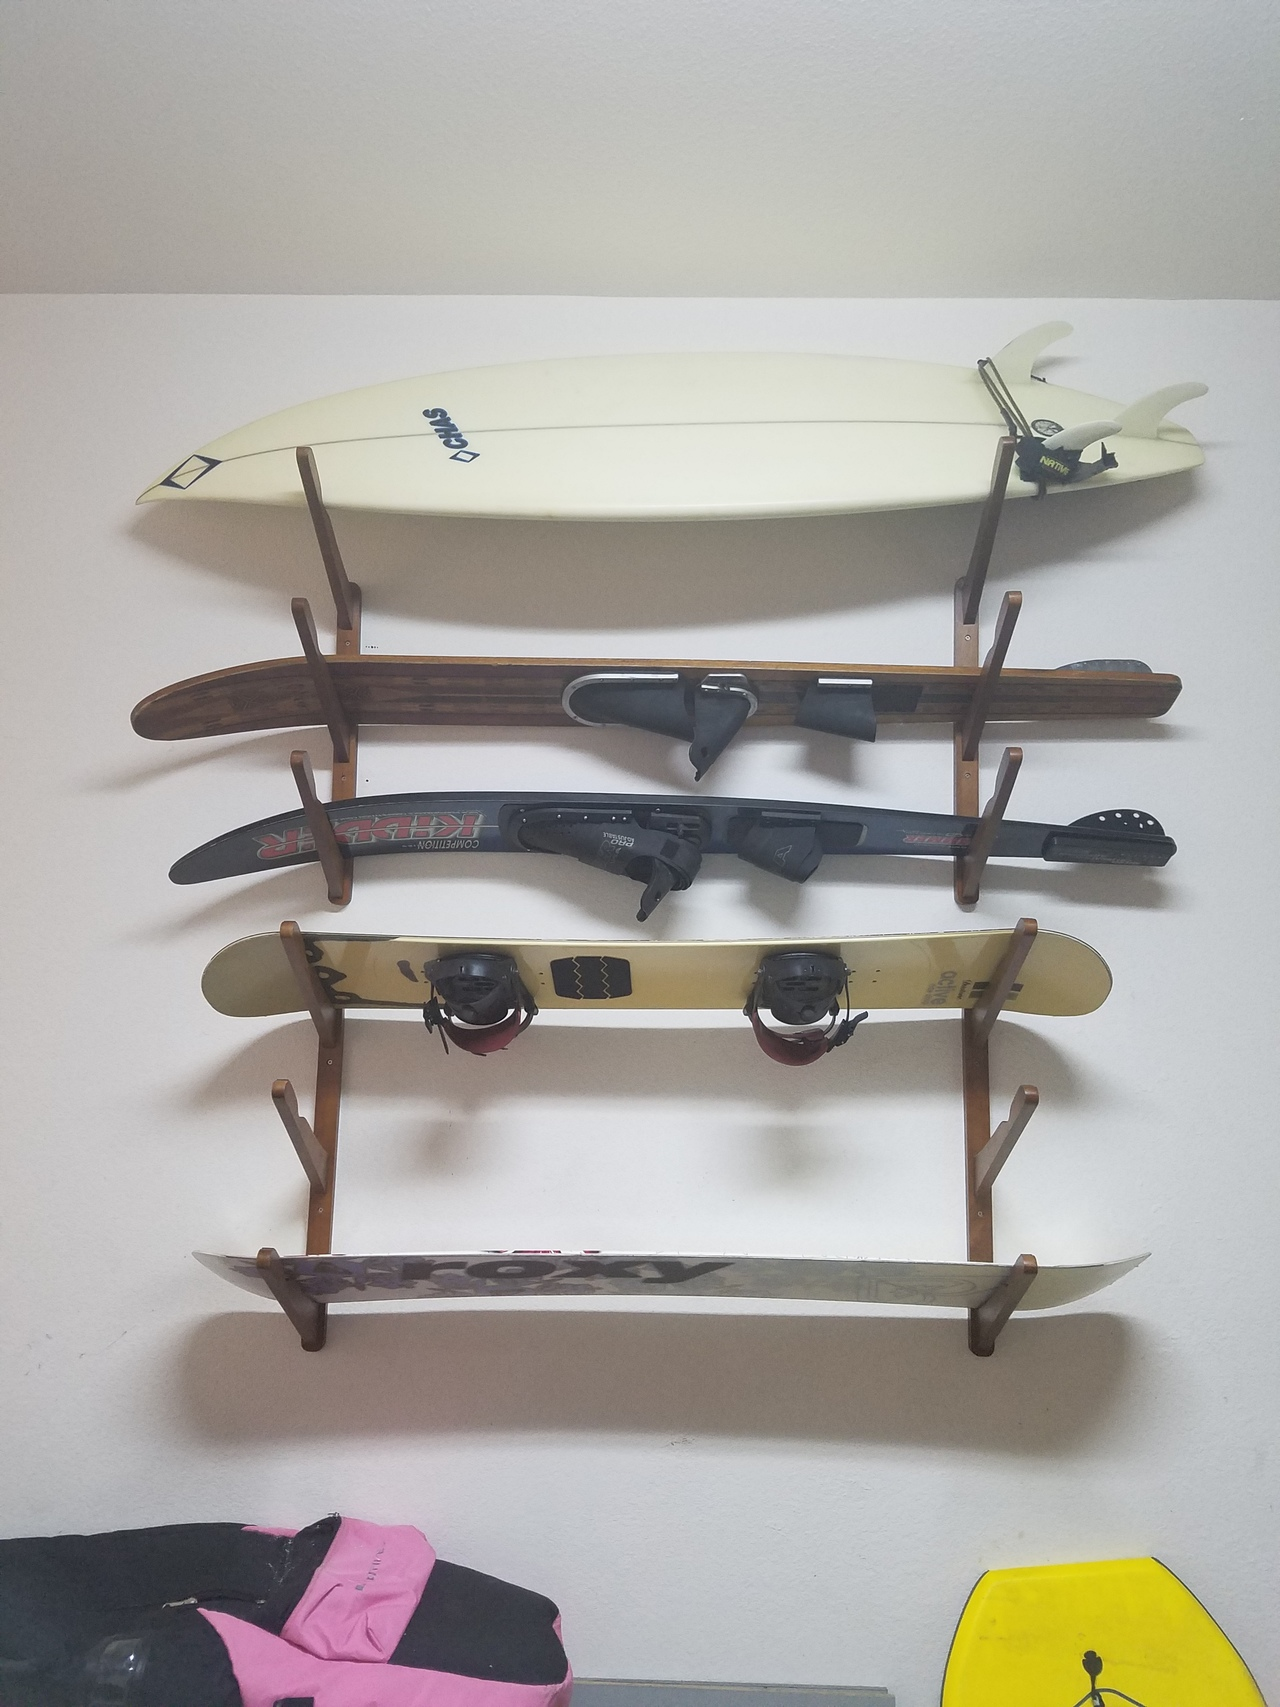 surfer art of category cloning full super on wall steps home size archived bicycle racks surfboard the uk for bike reviews ebay rack